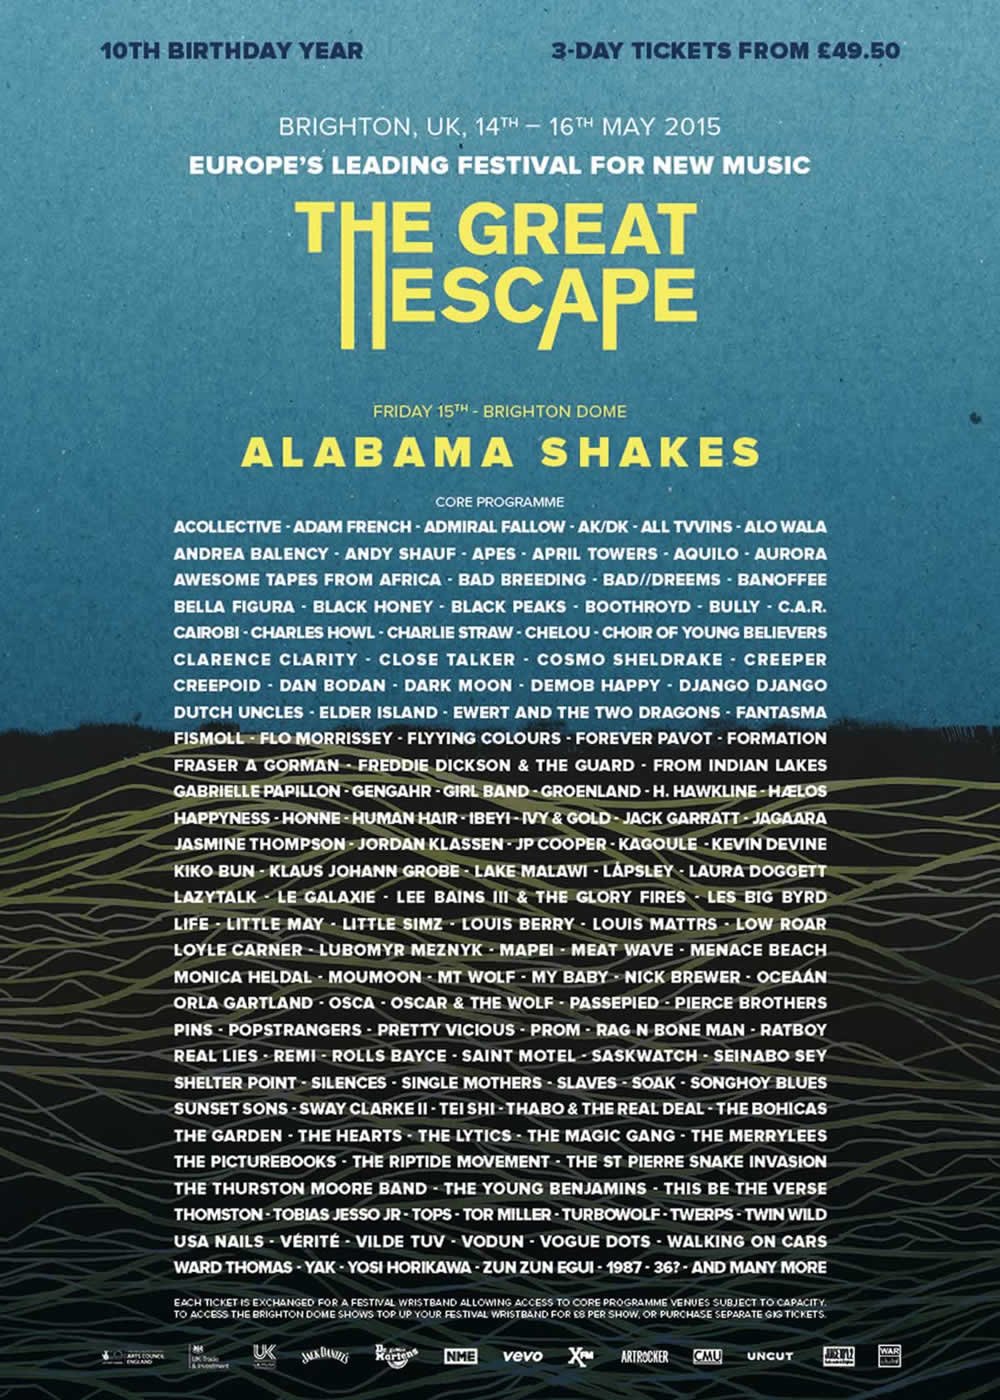 The Great Escape 2015 Lineup